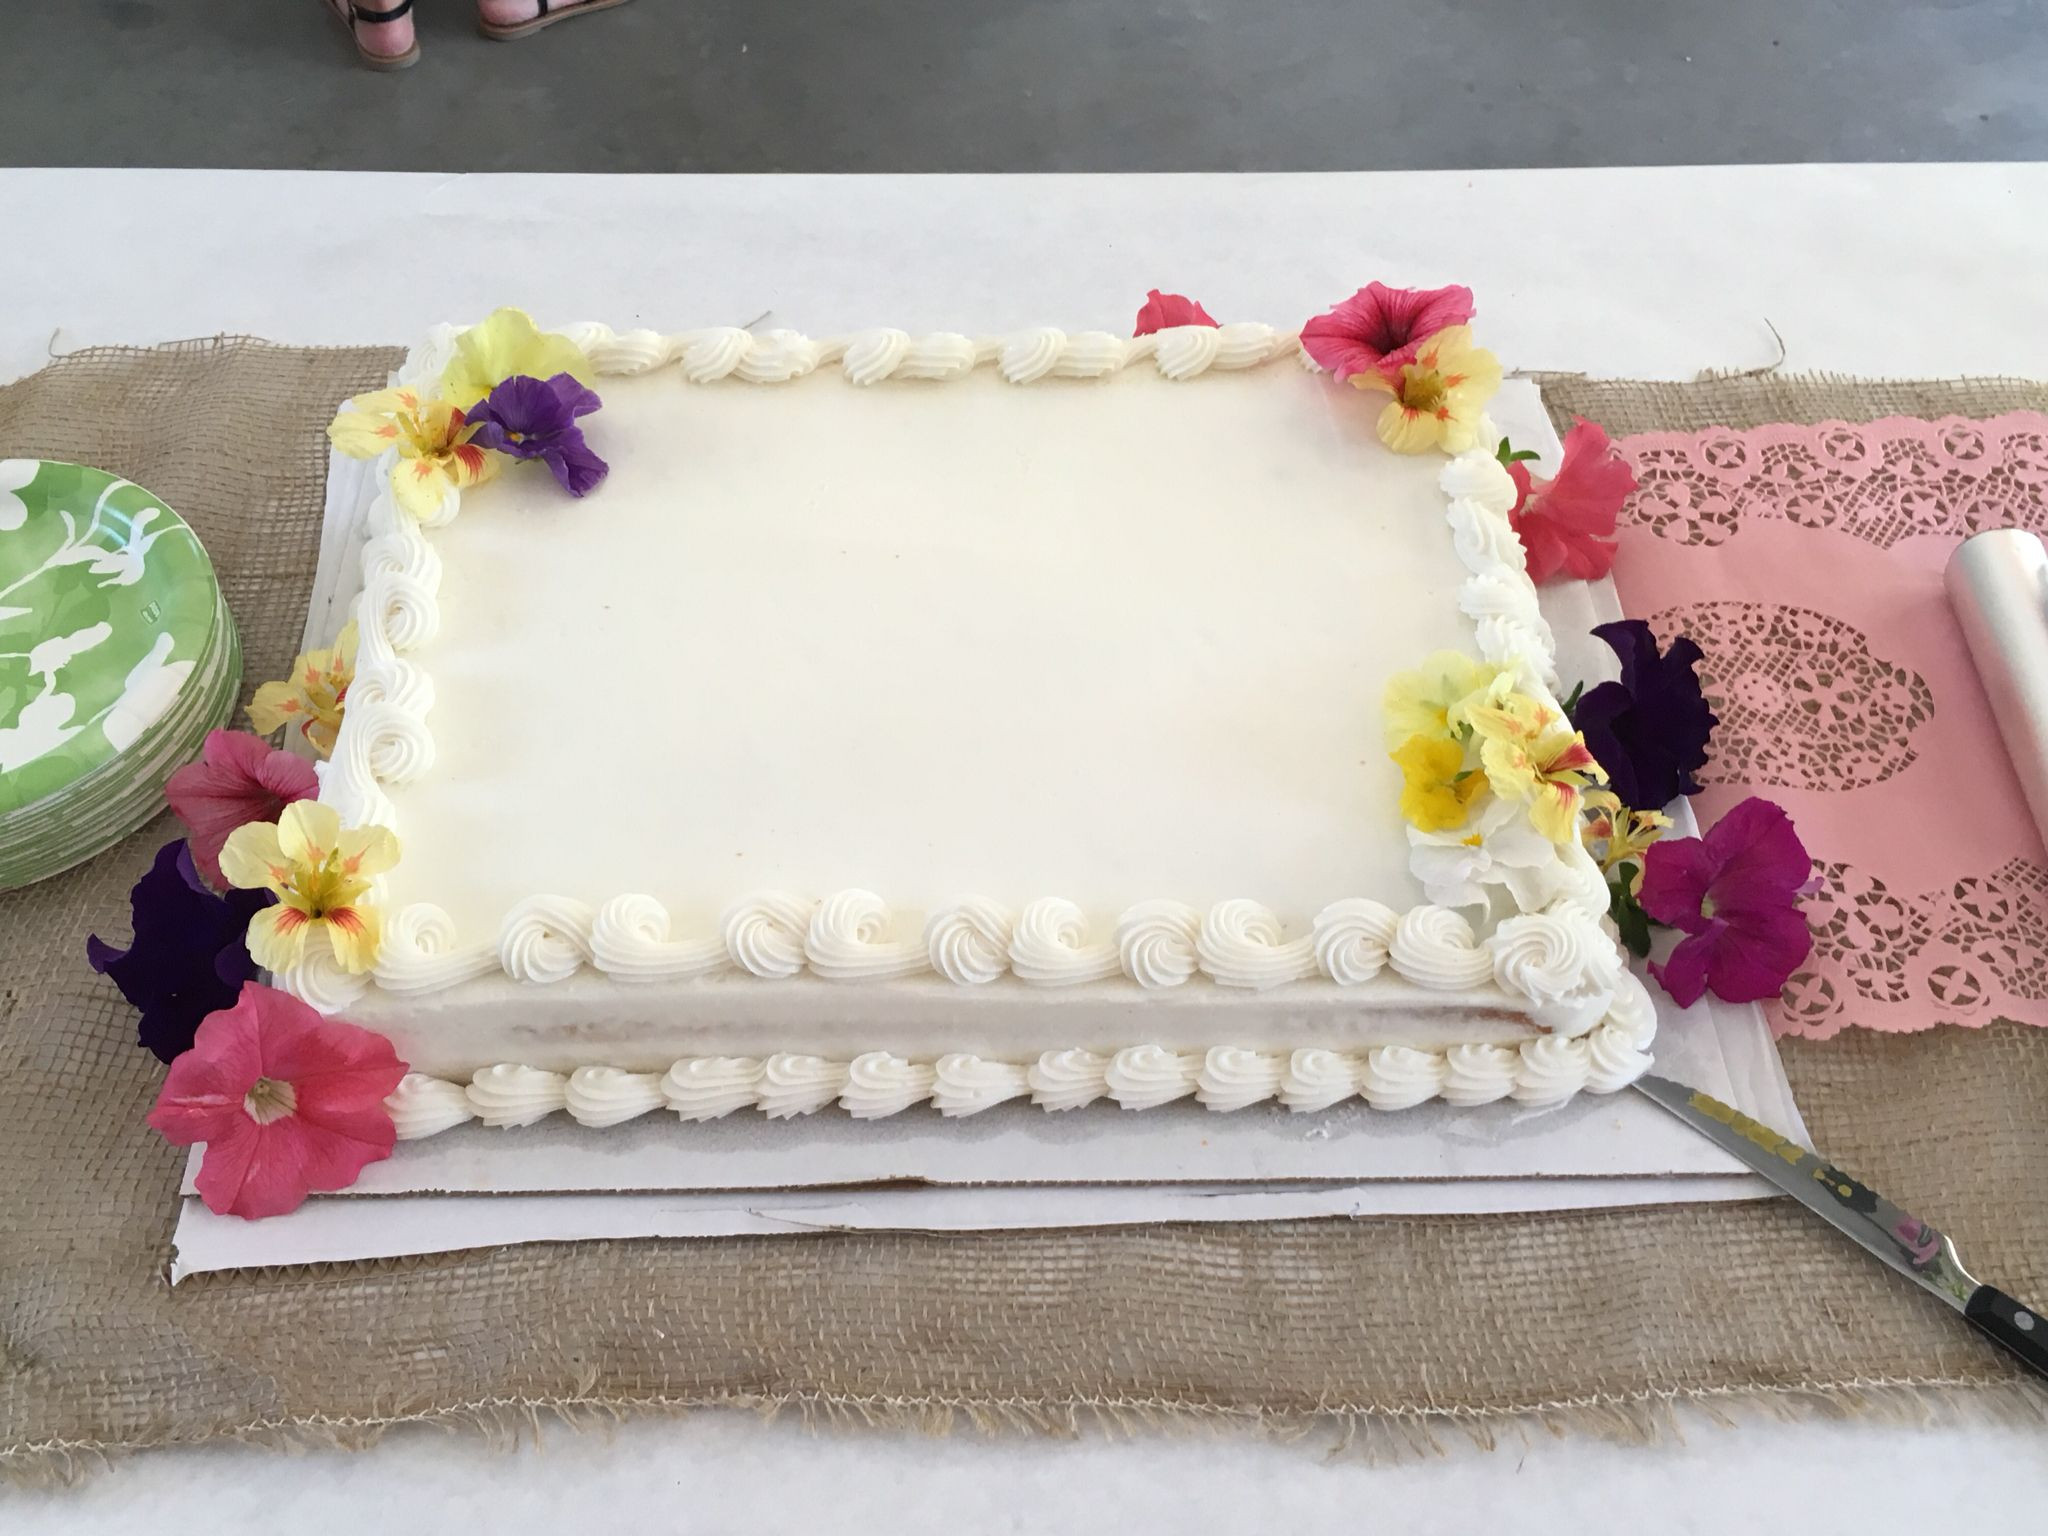 Wedding Sheet Cake Costco  Costco white sheet cake with fresh flowers for graduation